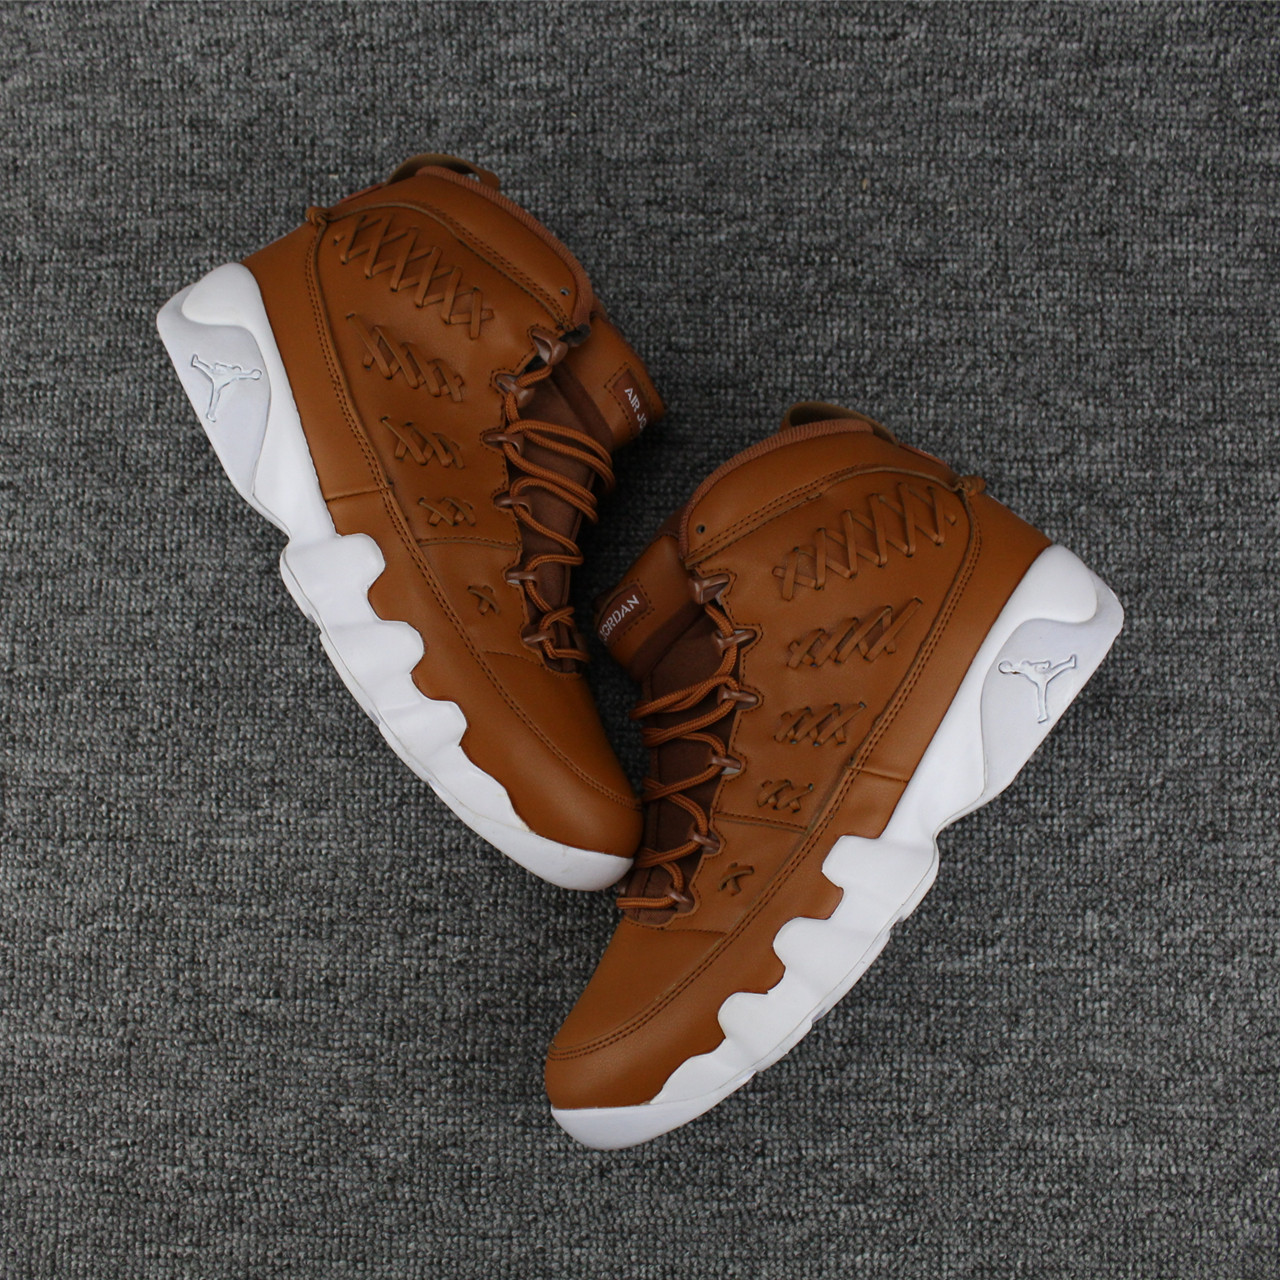 New Air Jordan 9 Knit Wheat Yellow White Shoes